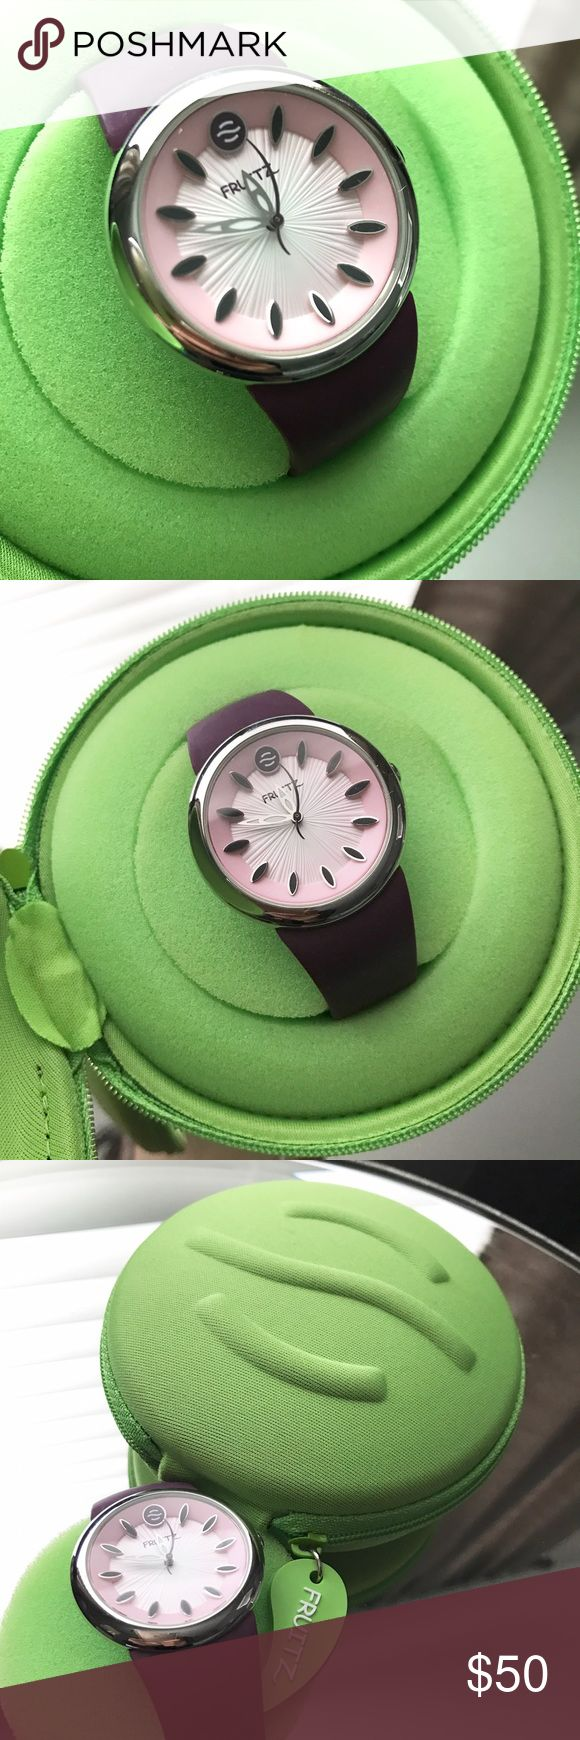 PHILLIP STEIN FRUITZ women's purple watch Women's purple watch - used. In excellent condition. Case included. Needs new batteries. Perfect pop of color to any outfit :) Phillip Stein Accessories Watches